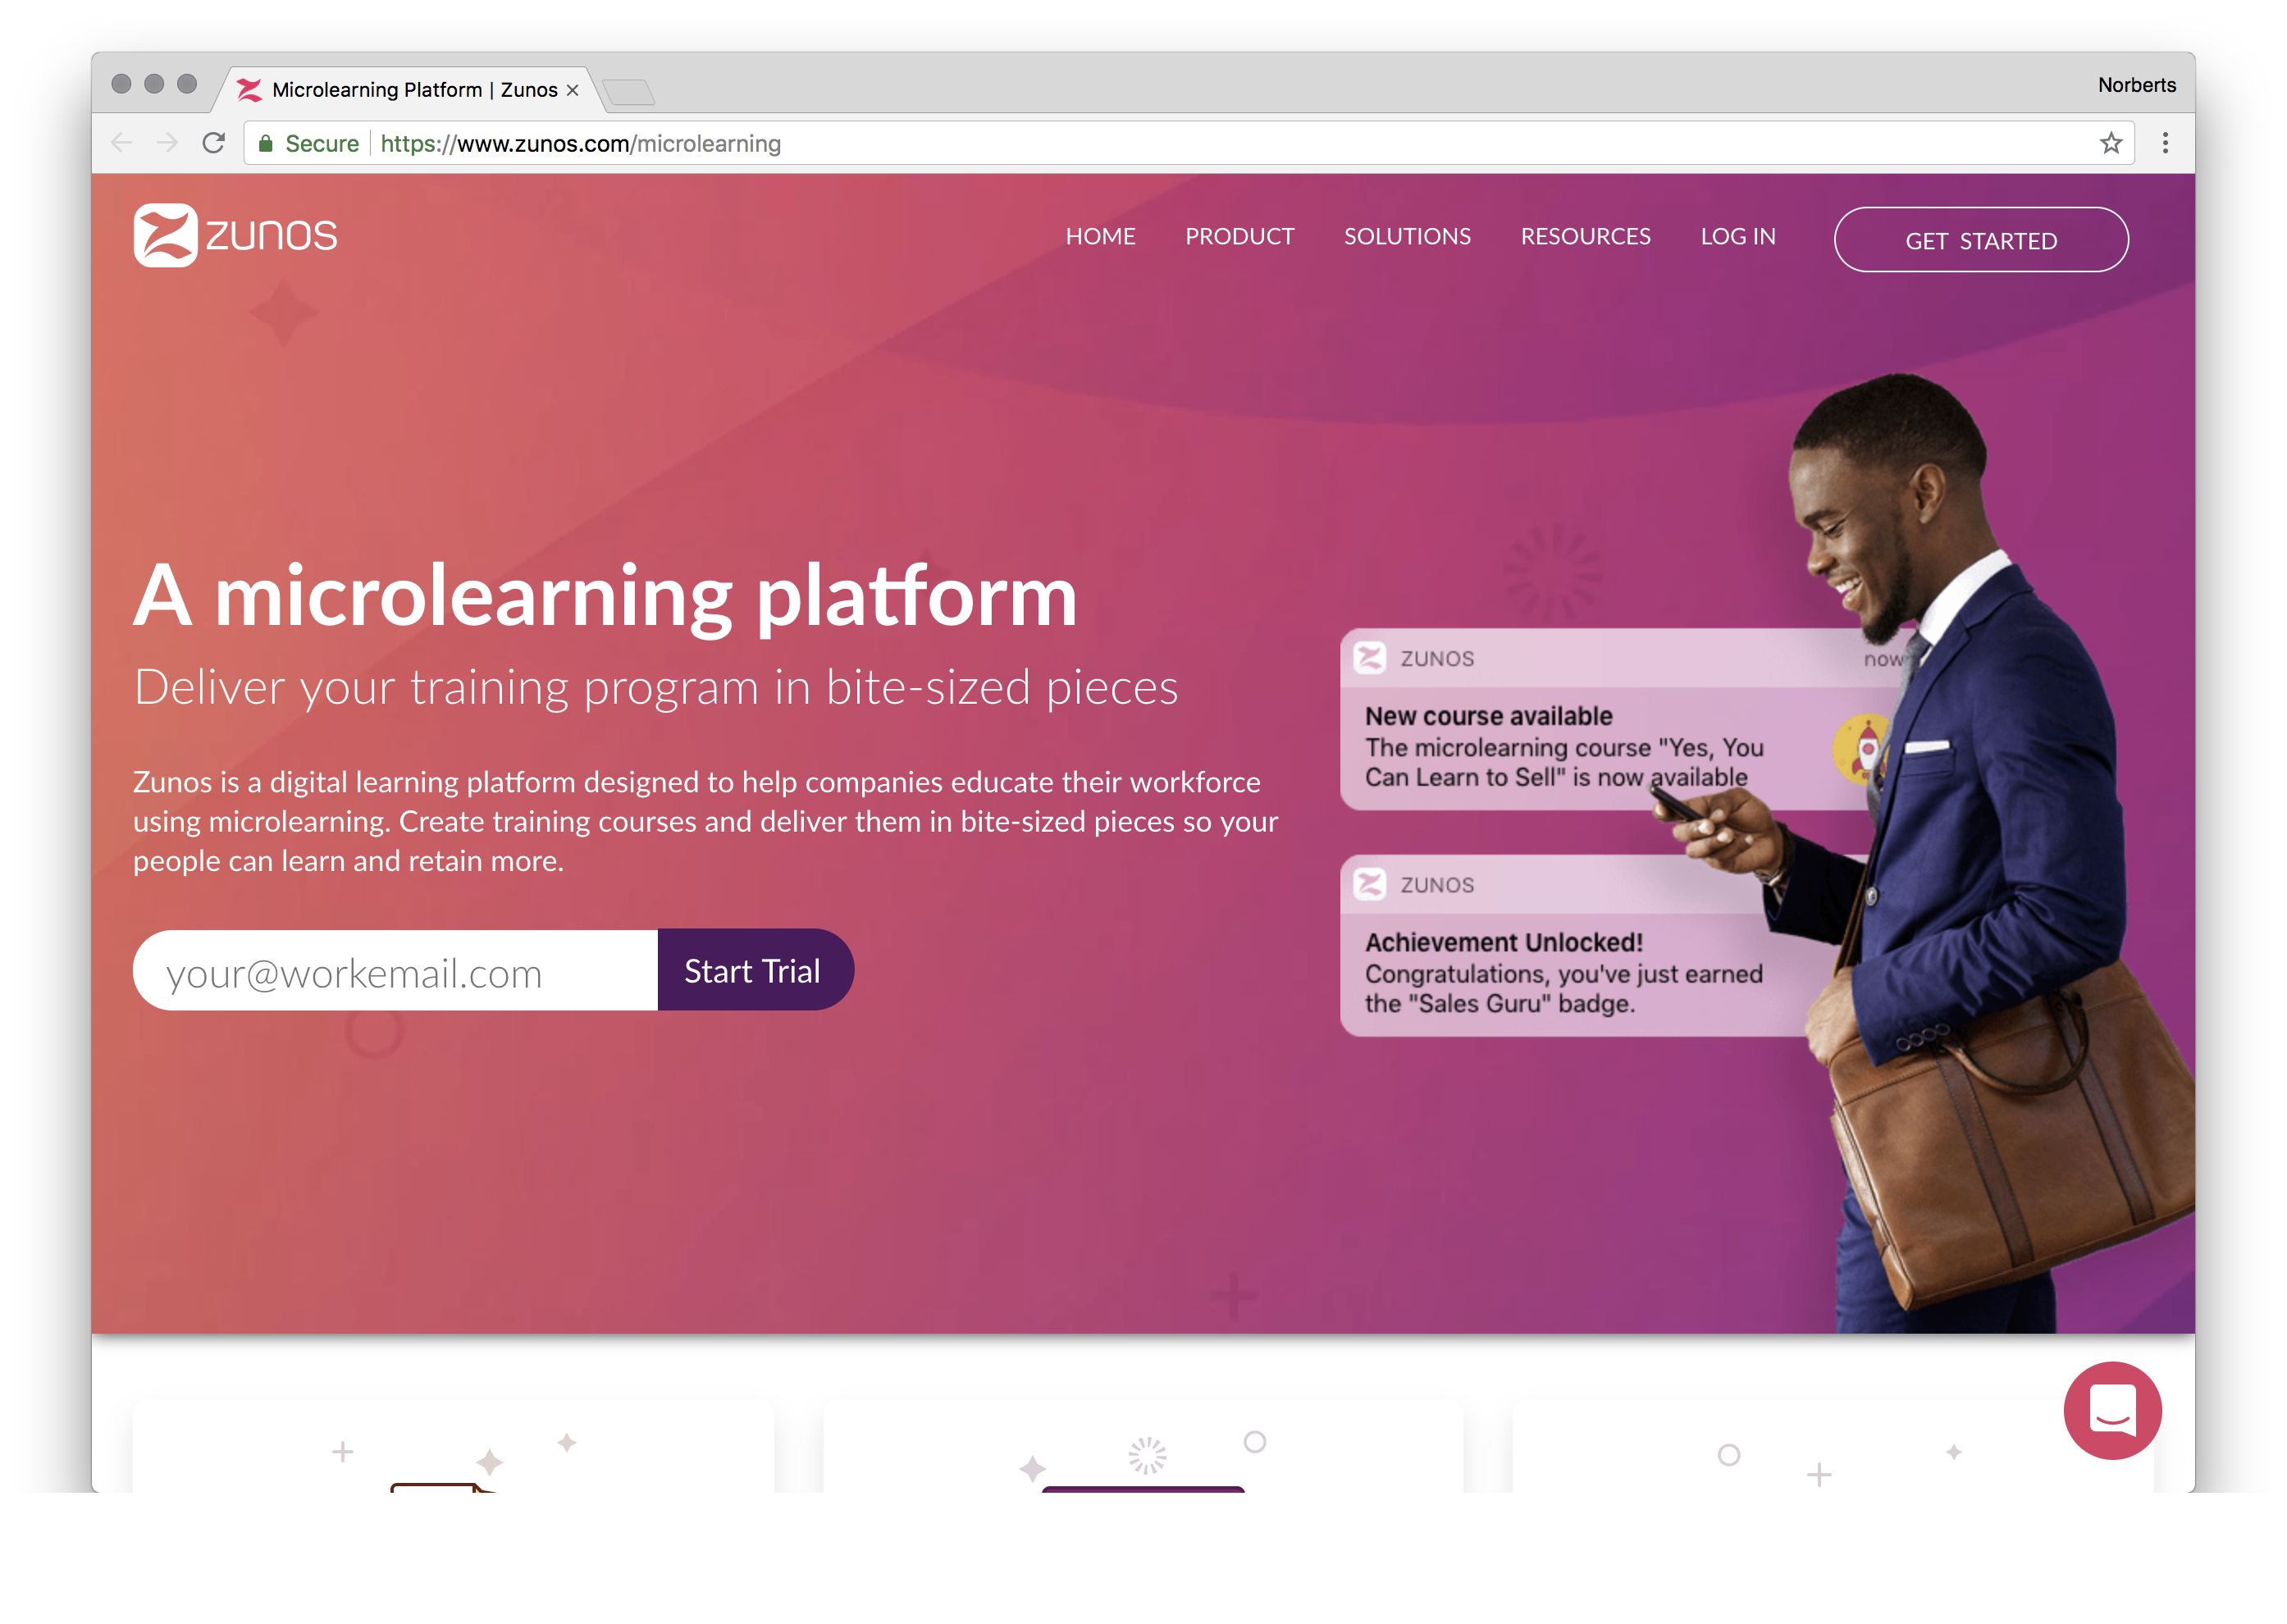 Zunos is a digital learning platform designed to help companies educate their workforce using microlearning. Create training courses and deliver them in bite-sized pieces so your people can learn and retain more.